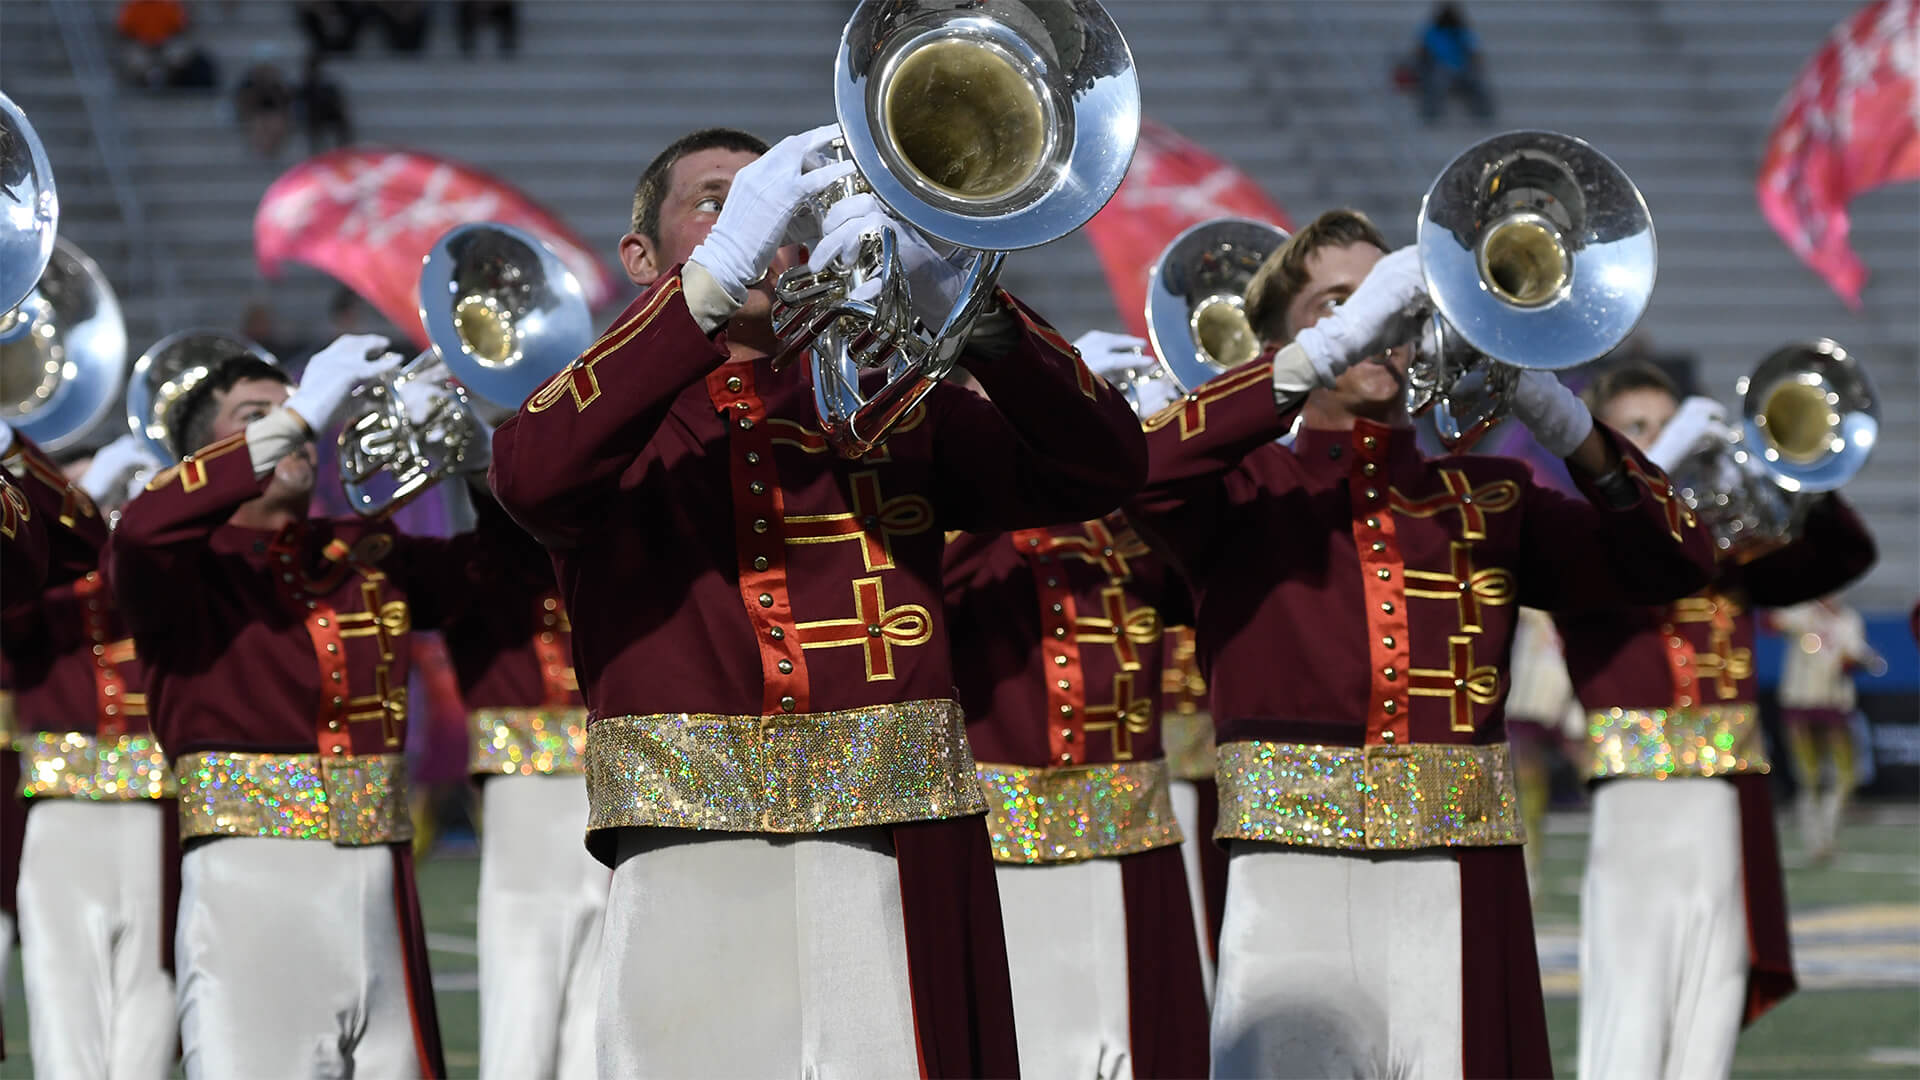 Cadets to forgo west coast portion of 2018 tour